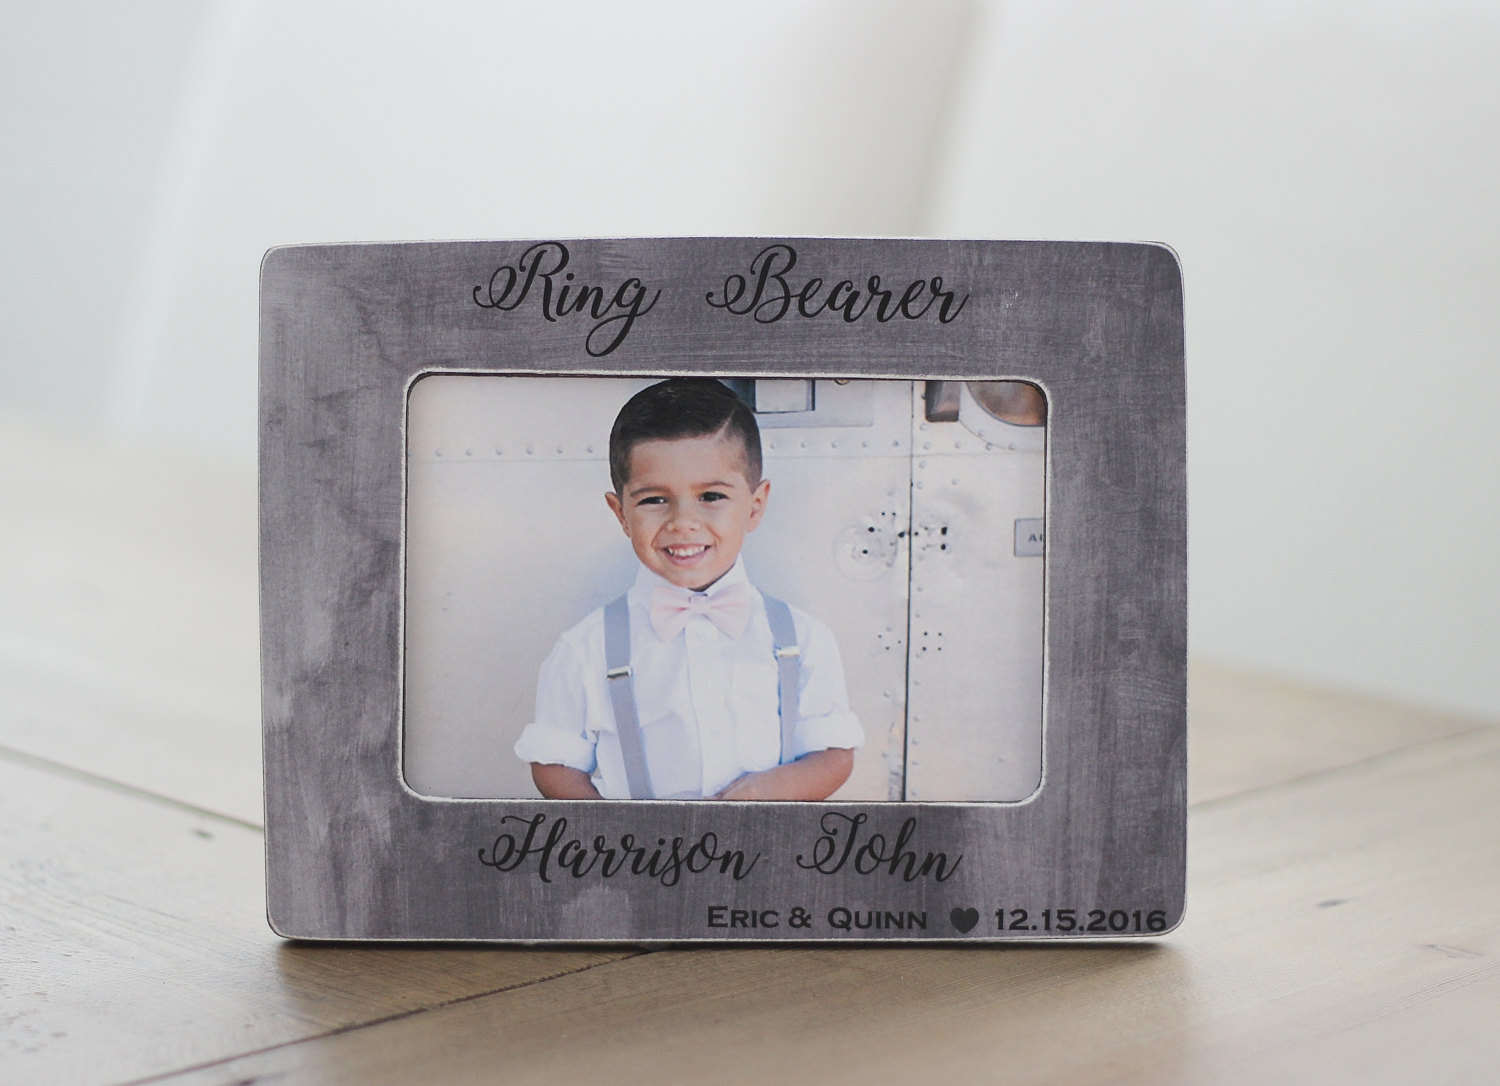 Ring Bearer GIFT Personalized Picture Frame Thank You Gift | Etsy